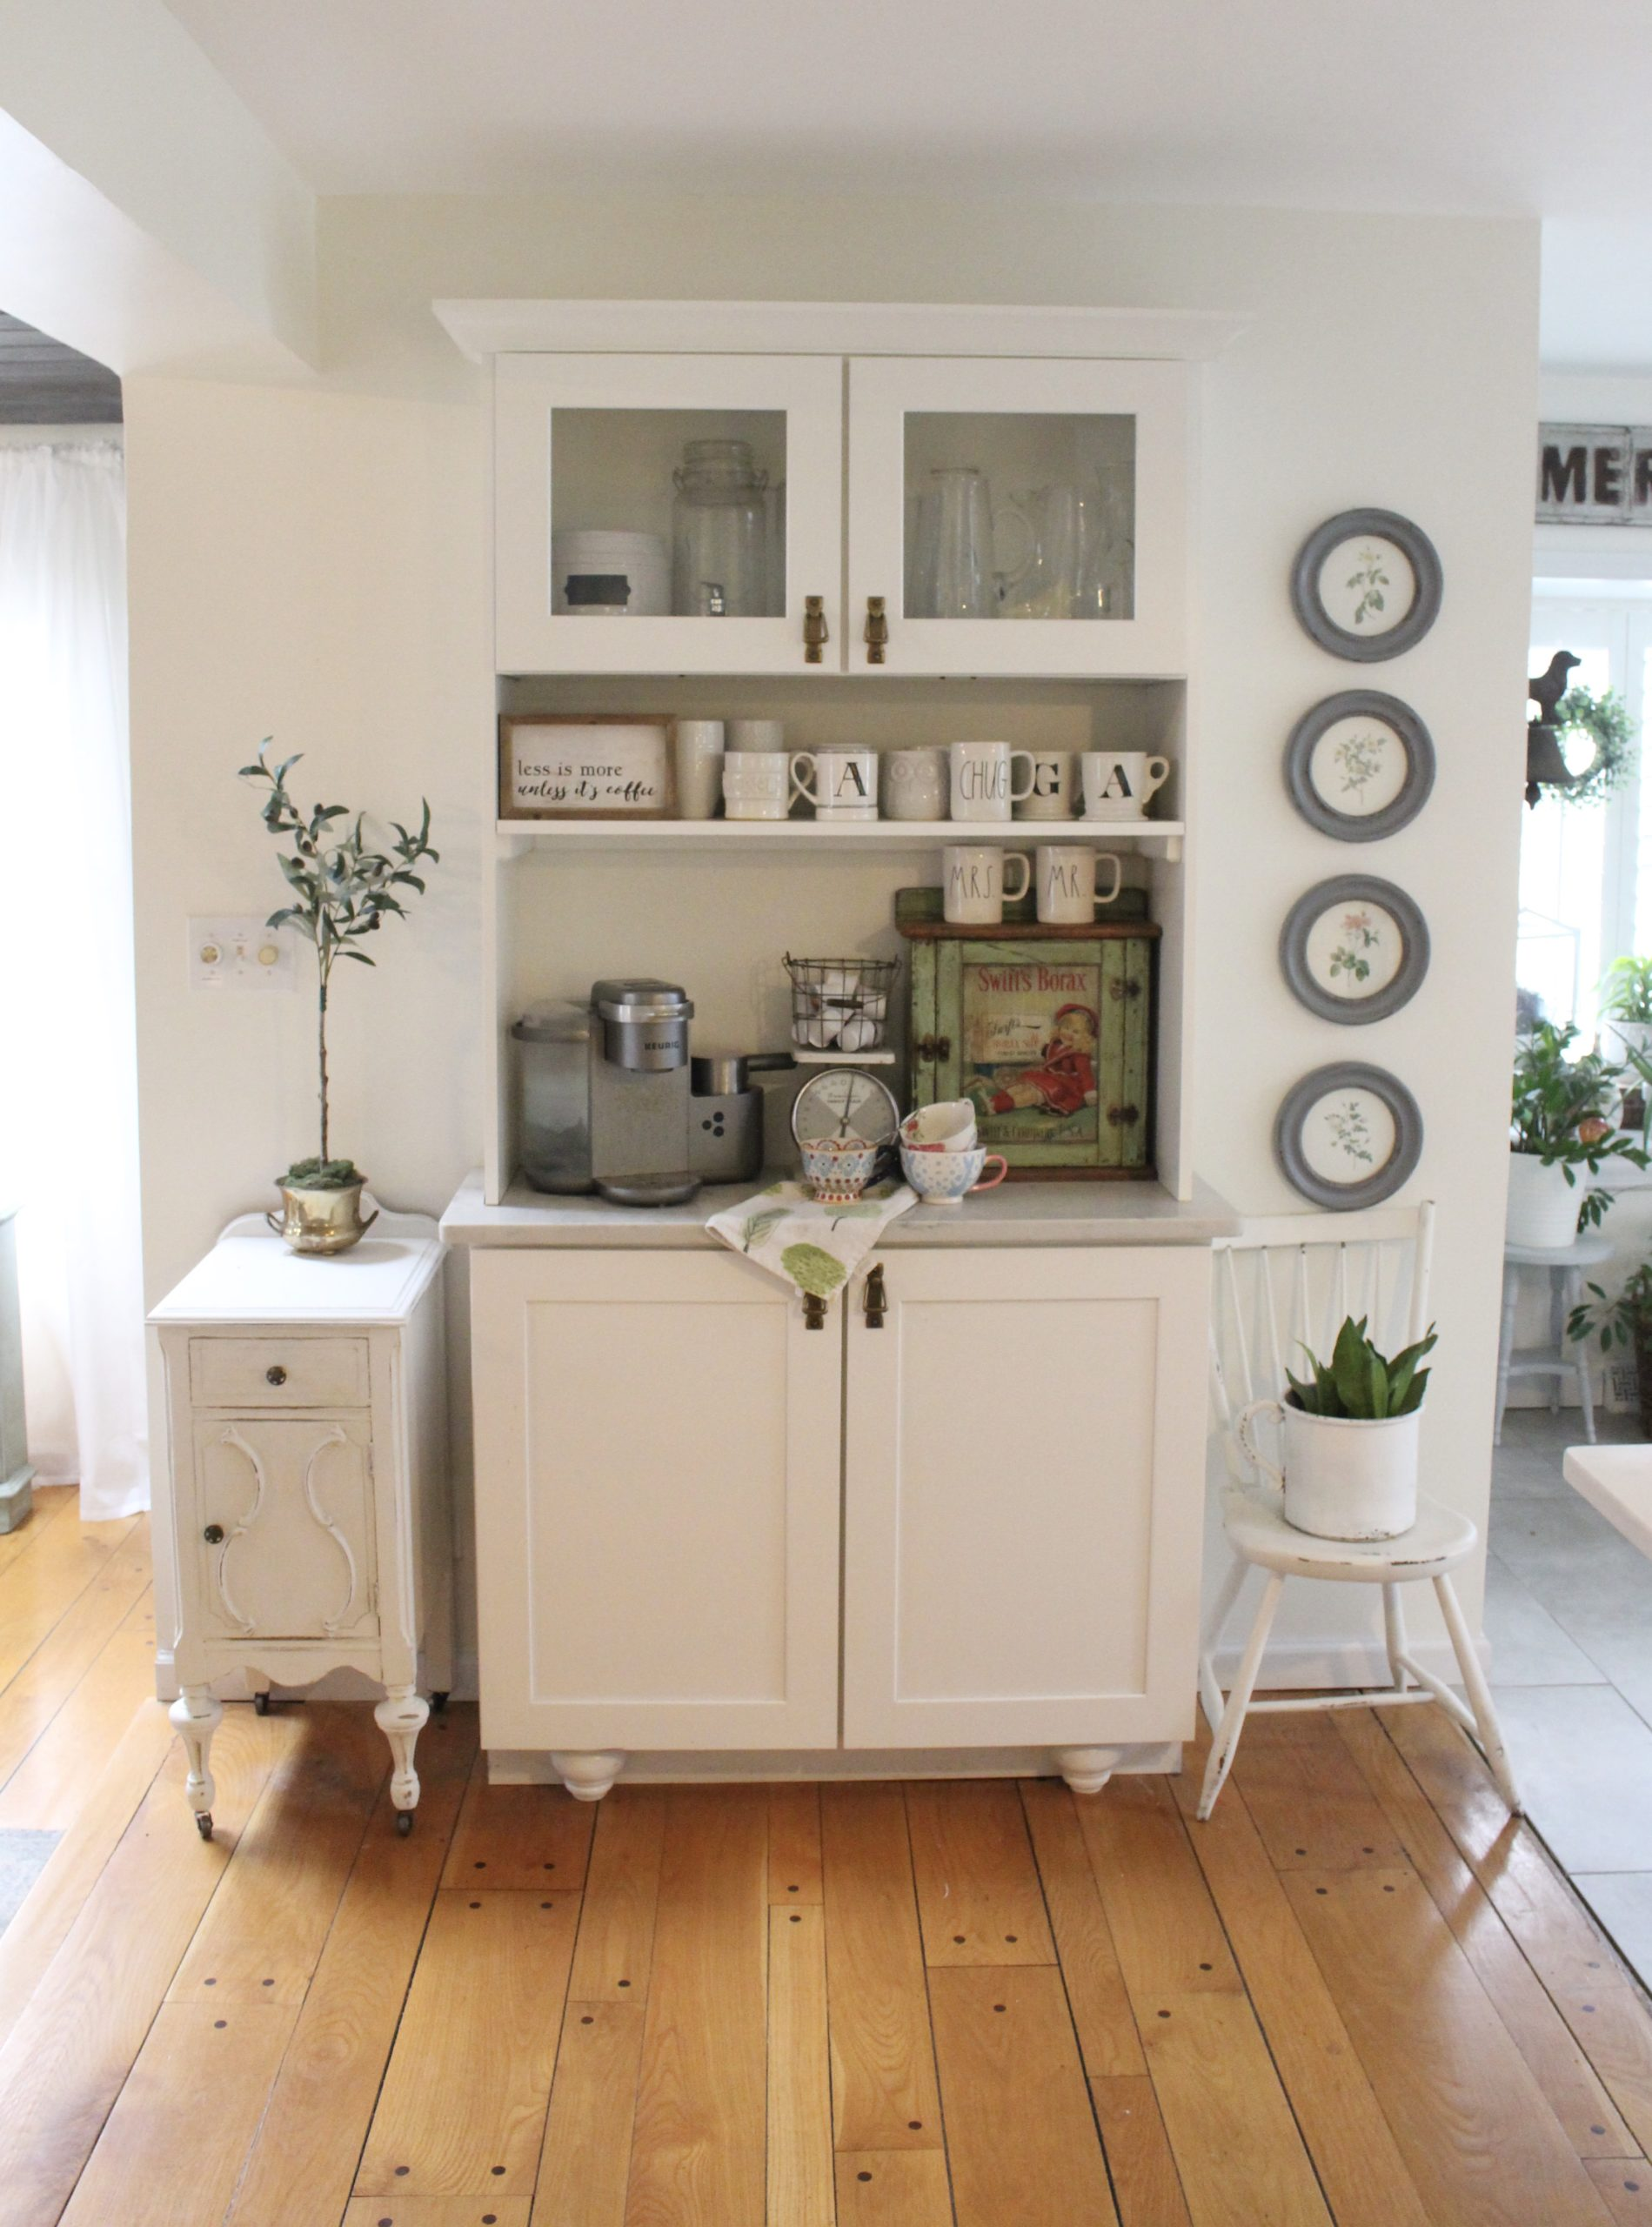 Thrift Store Cabinet Updated with Chalk Paint for a Coffee Bar.- diy- projects- painting furniture- using chalk paint- updating furniture- rusteoleum linen white chalk paint- coffee bar